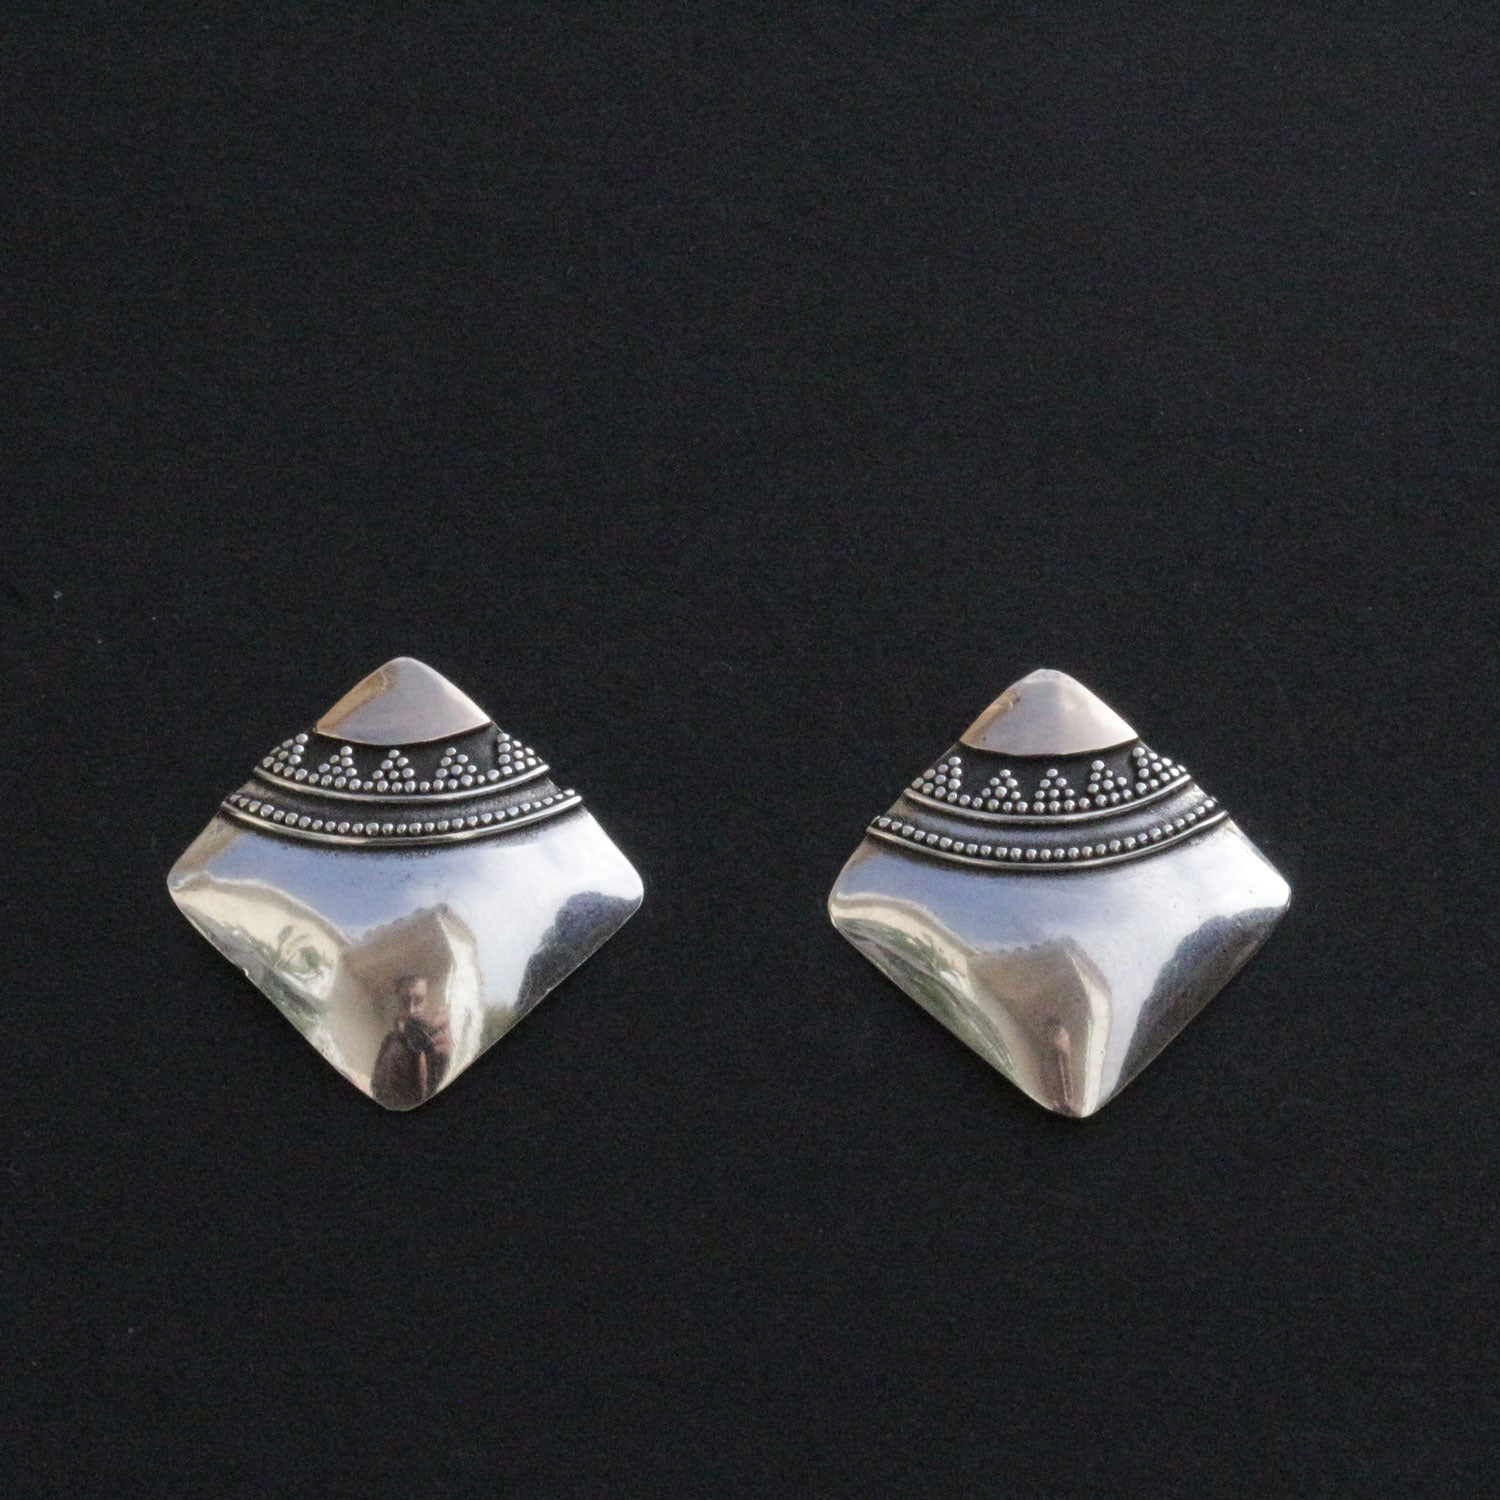 Granulated stud earrings